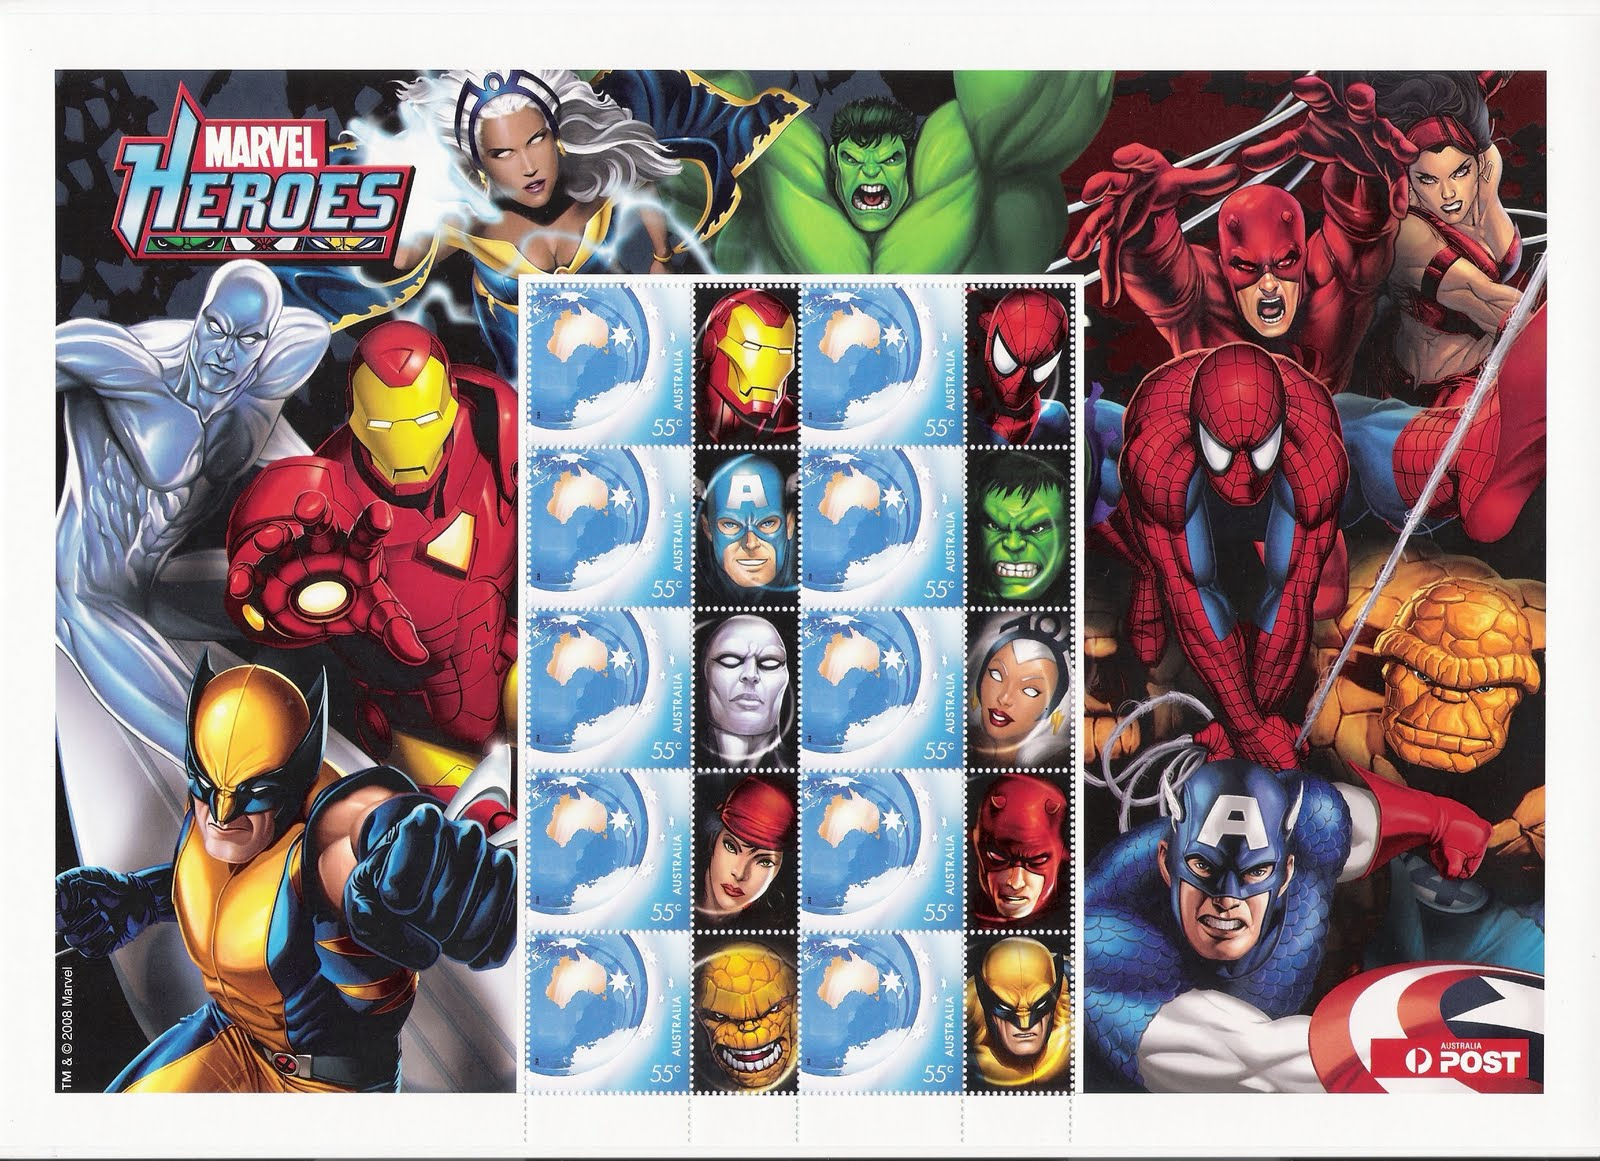 Marvel Superheroes Stamps. April 28, 2010 by Alex Tang Leave a Comment